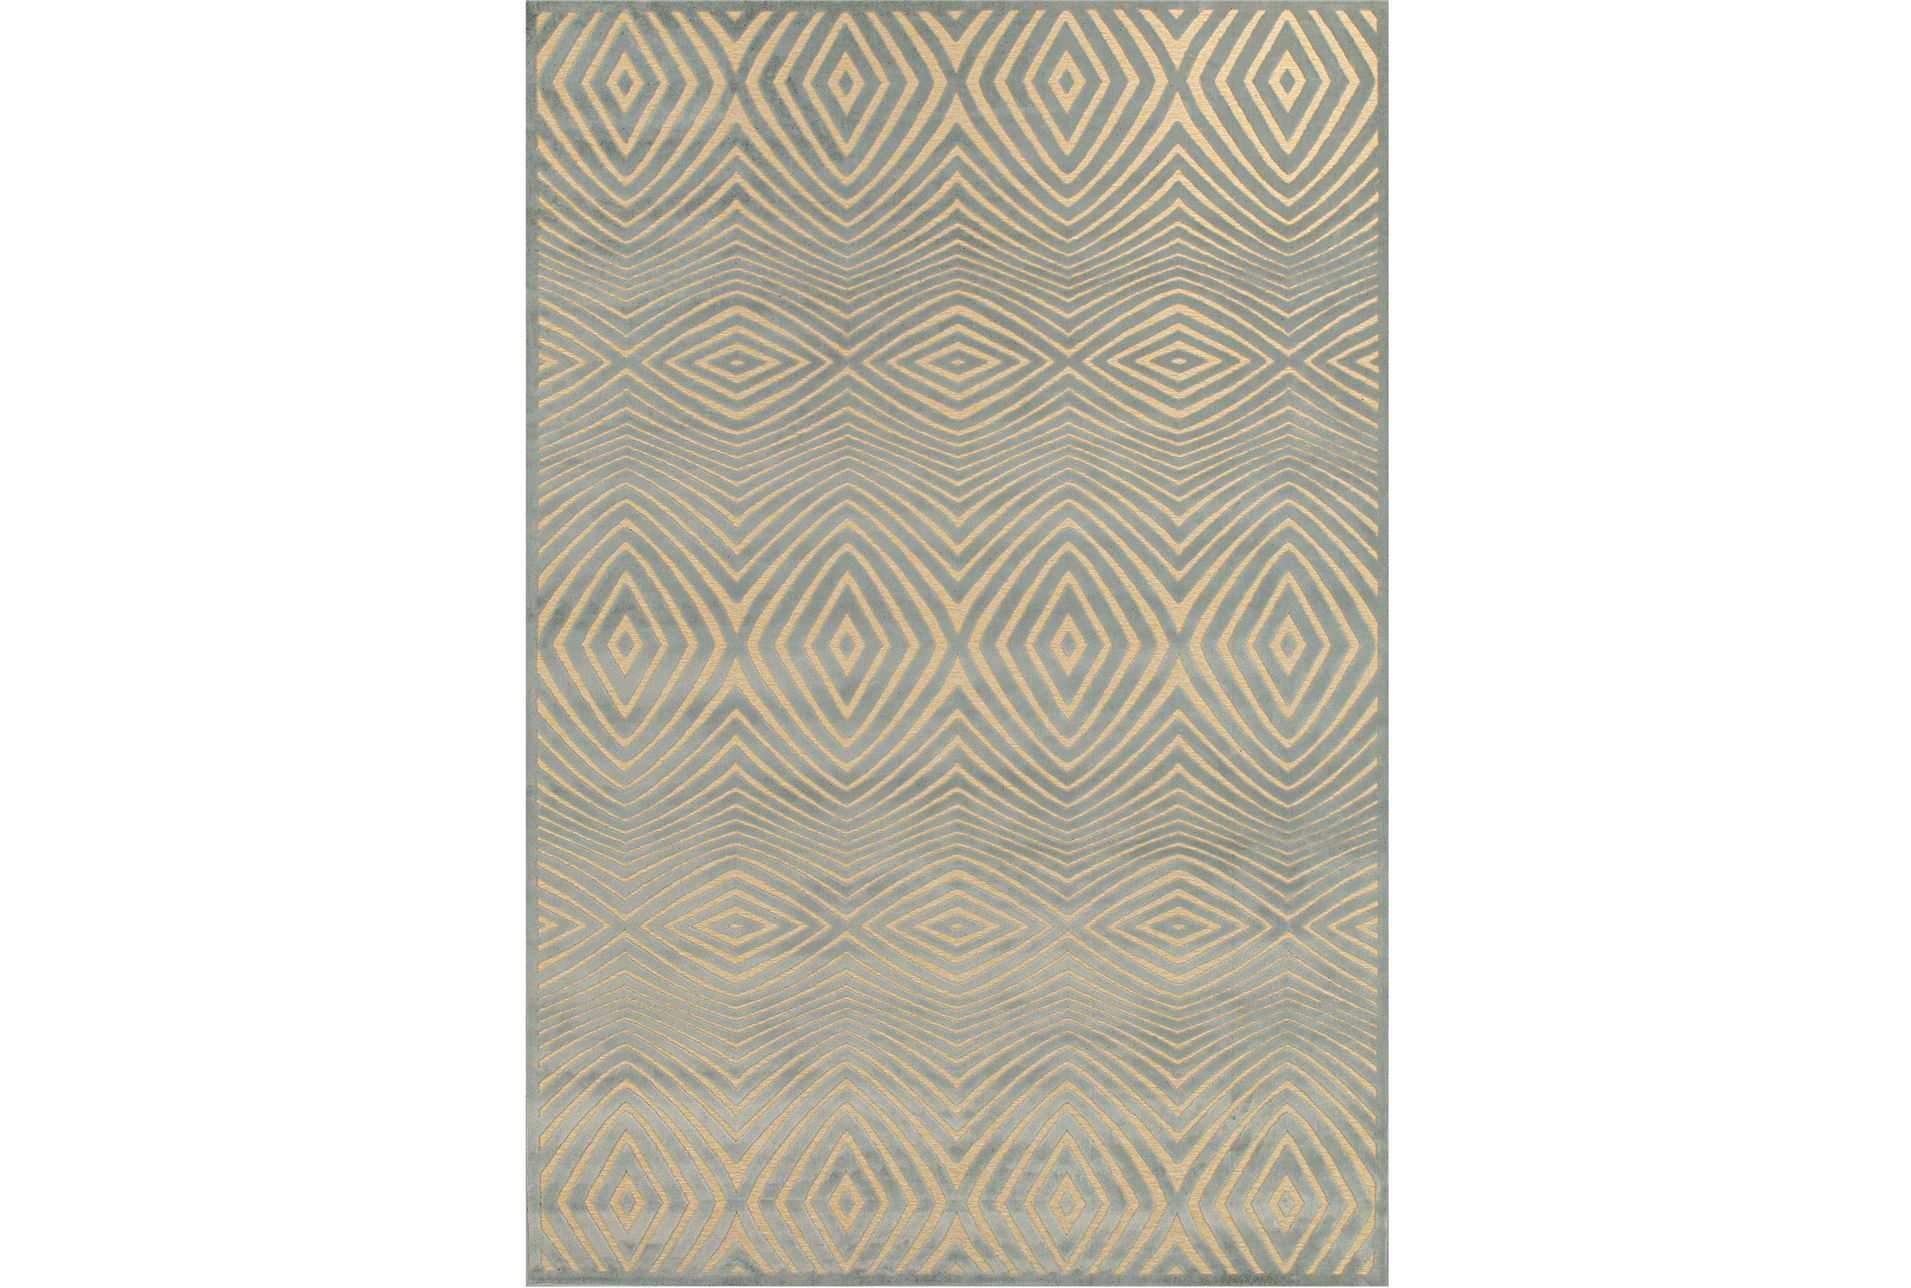 63x90 rug haiden silver living spaces for Living spaces rugs